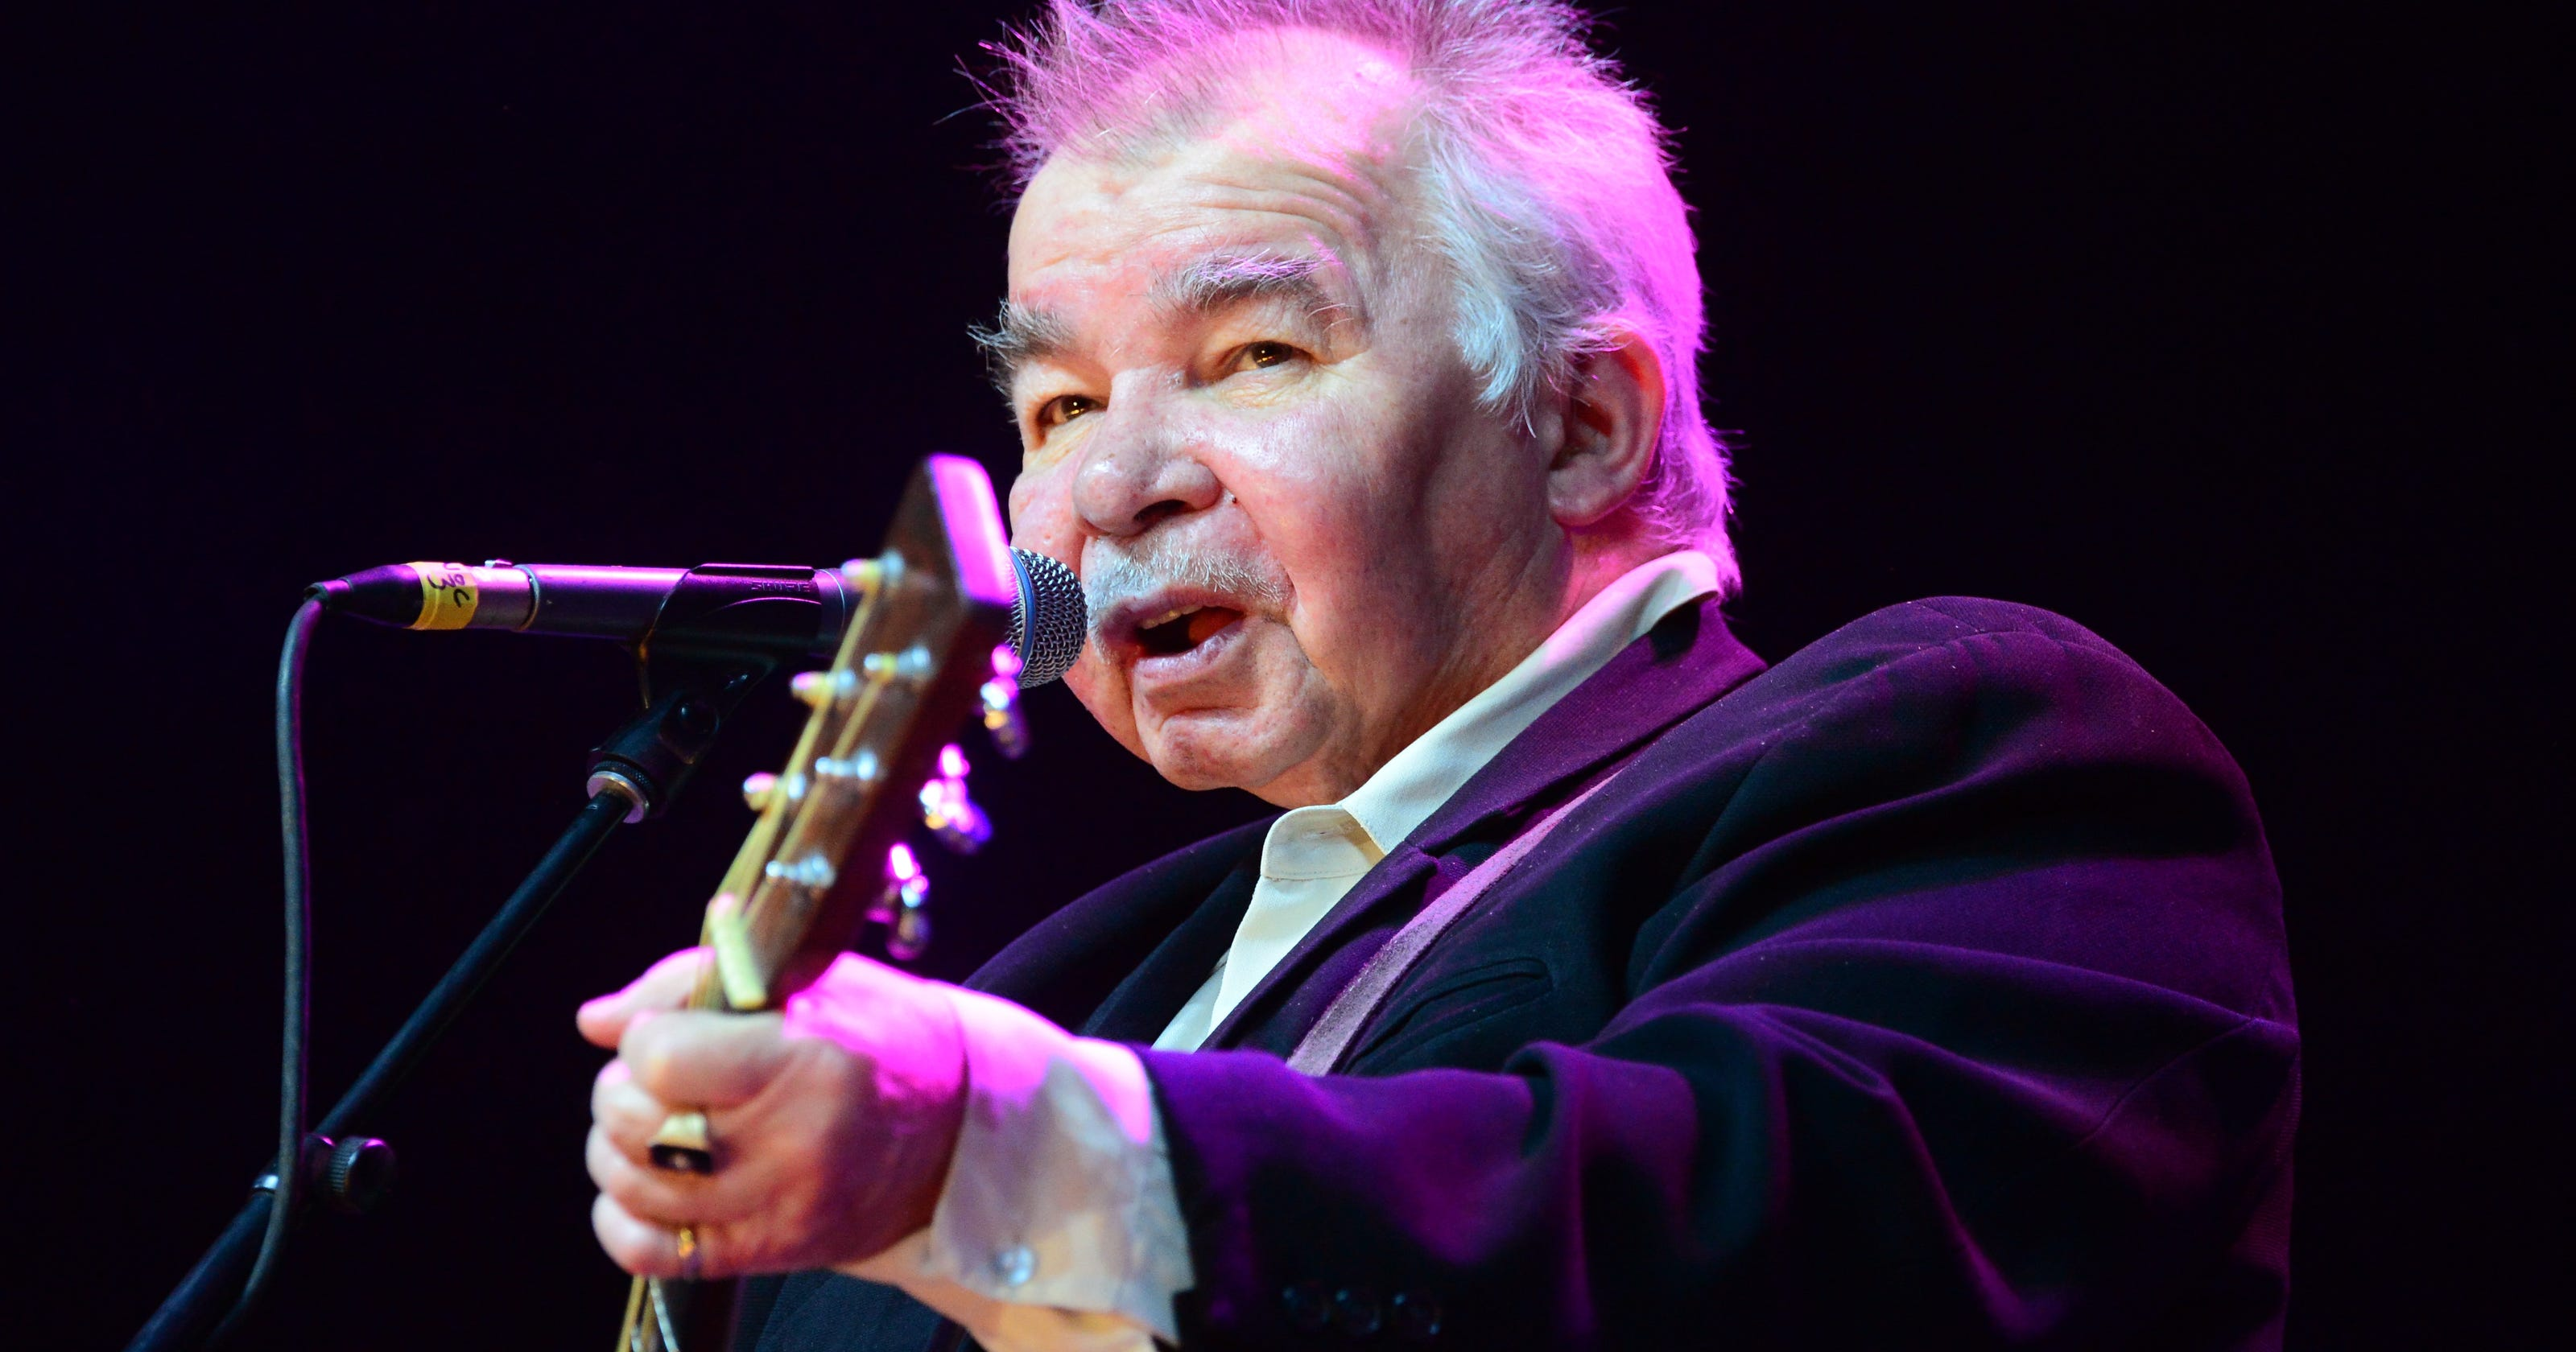 After 2013 cancellation, Prine proves worth the wait